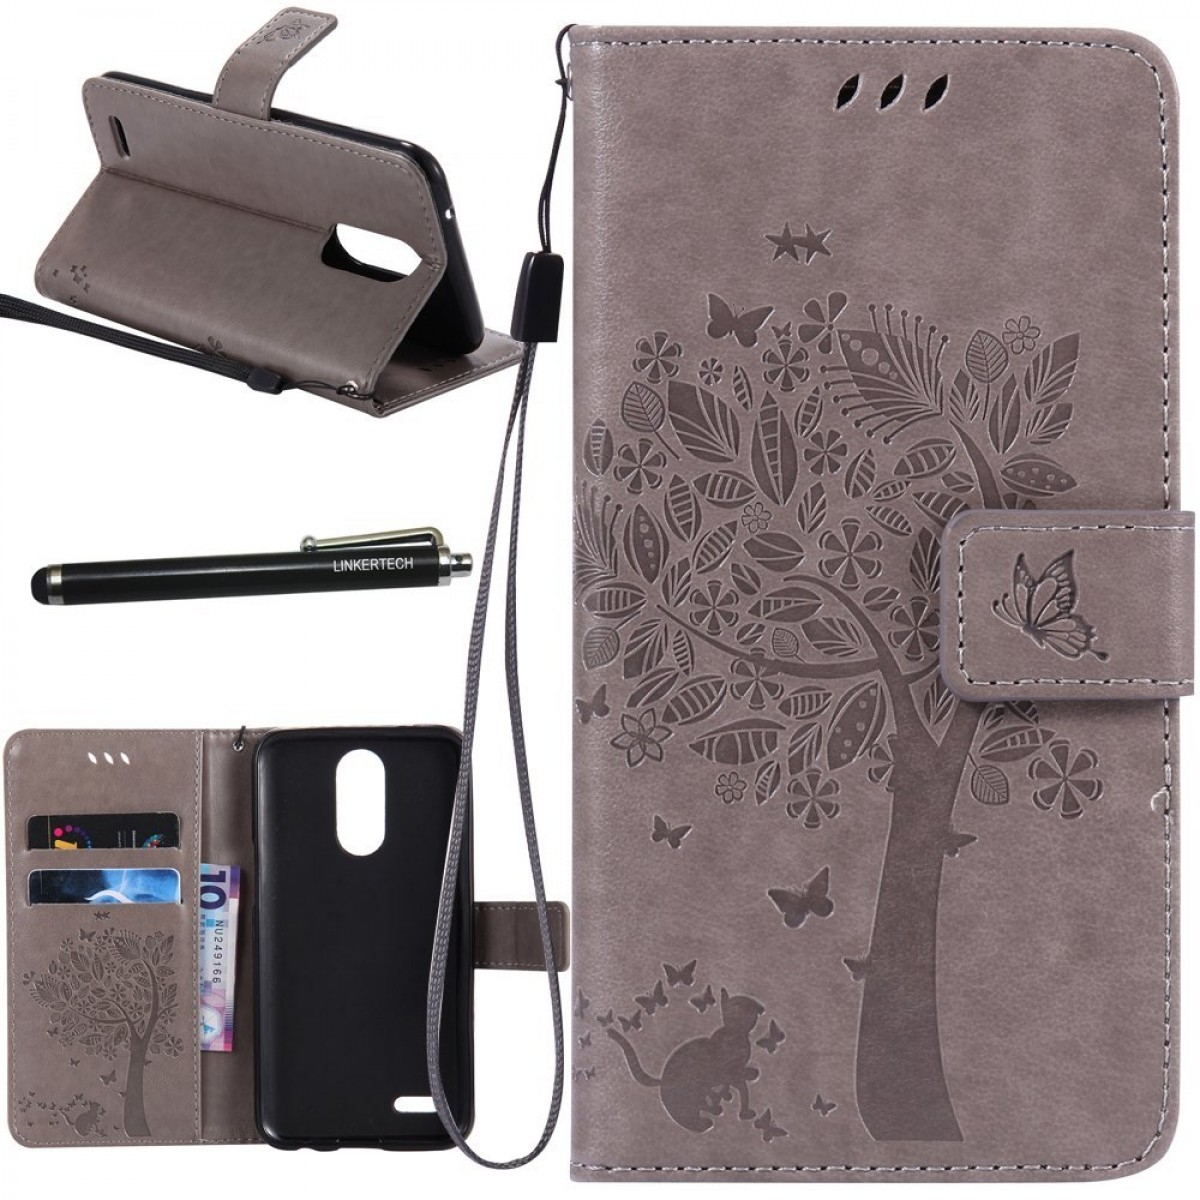 LG K20 Plus Case, LG K20 V Case, LG Harmony Case, Linkertech [Kickstand  Feature] PU Leather Wallet Flip Pouch Case Cover with Wrist Strap and Card